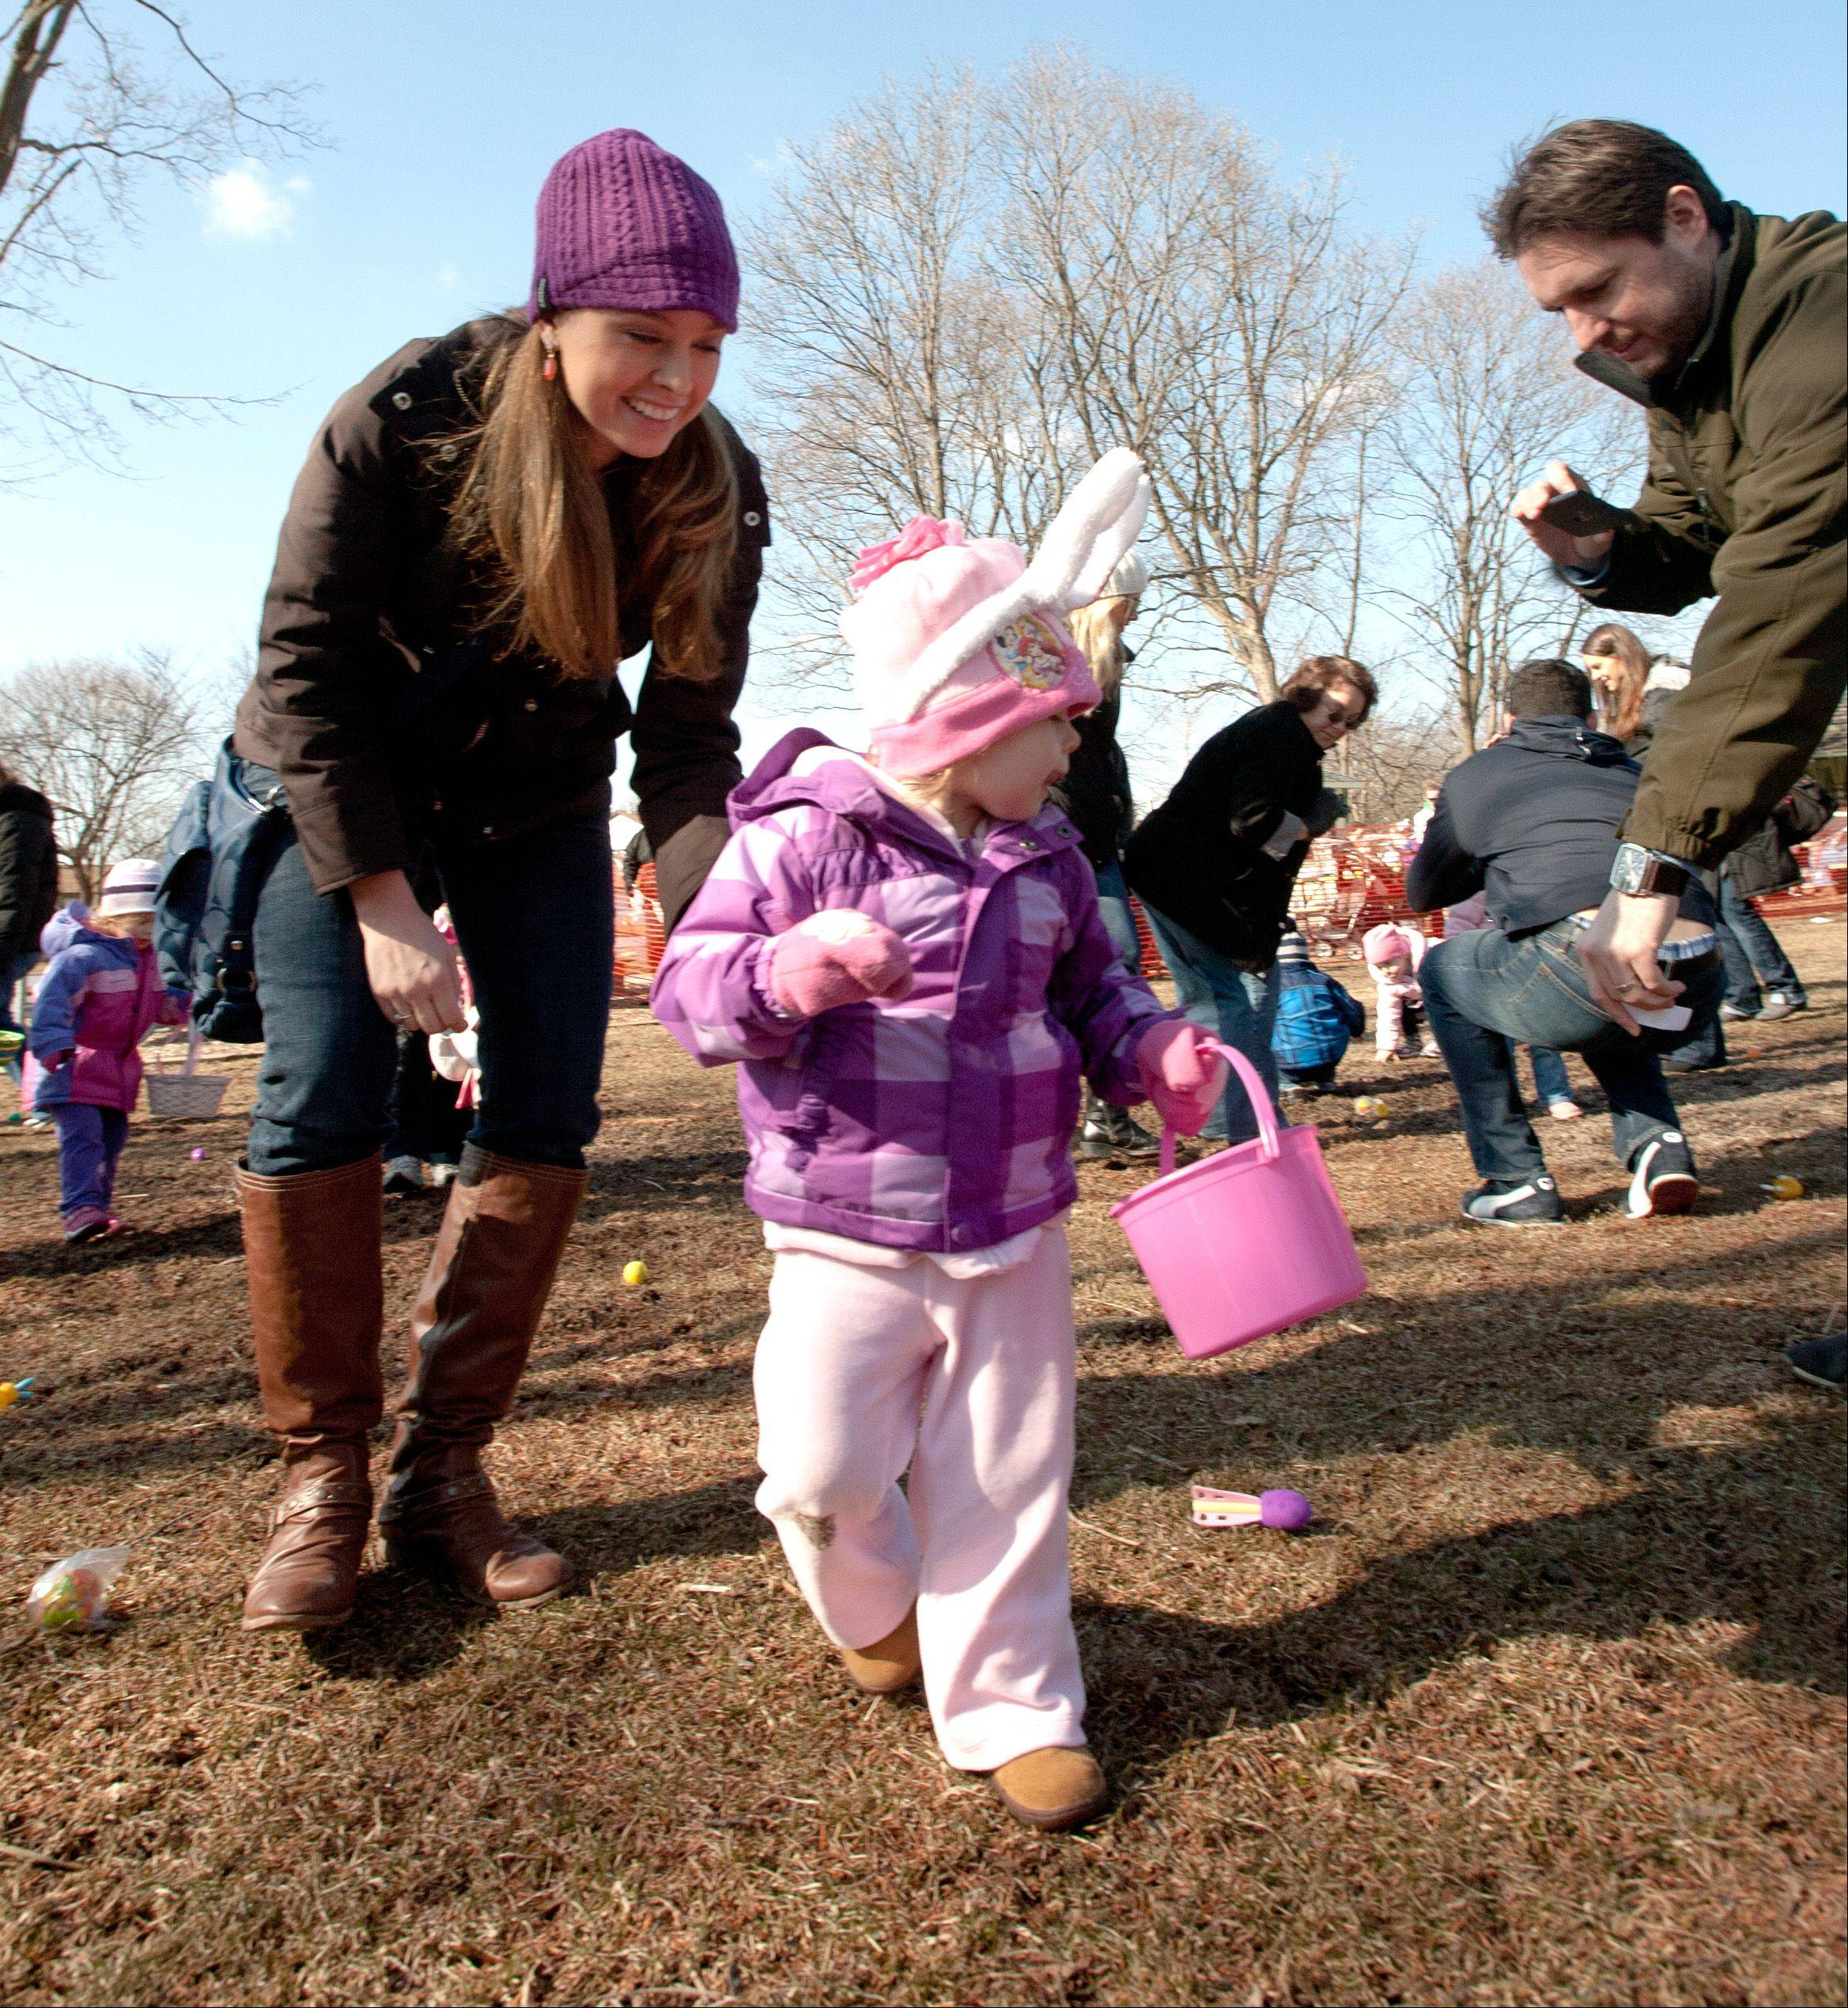 Clara Martyn, 2, of Downers Grove, and her mother Stephanie, fill her bucket during the Wheaton Park District's Great Egg Scramble. Sean Martyn, right, records the moment.